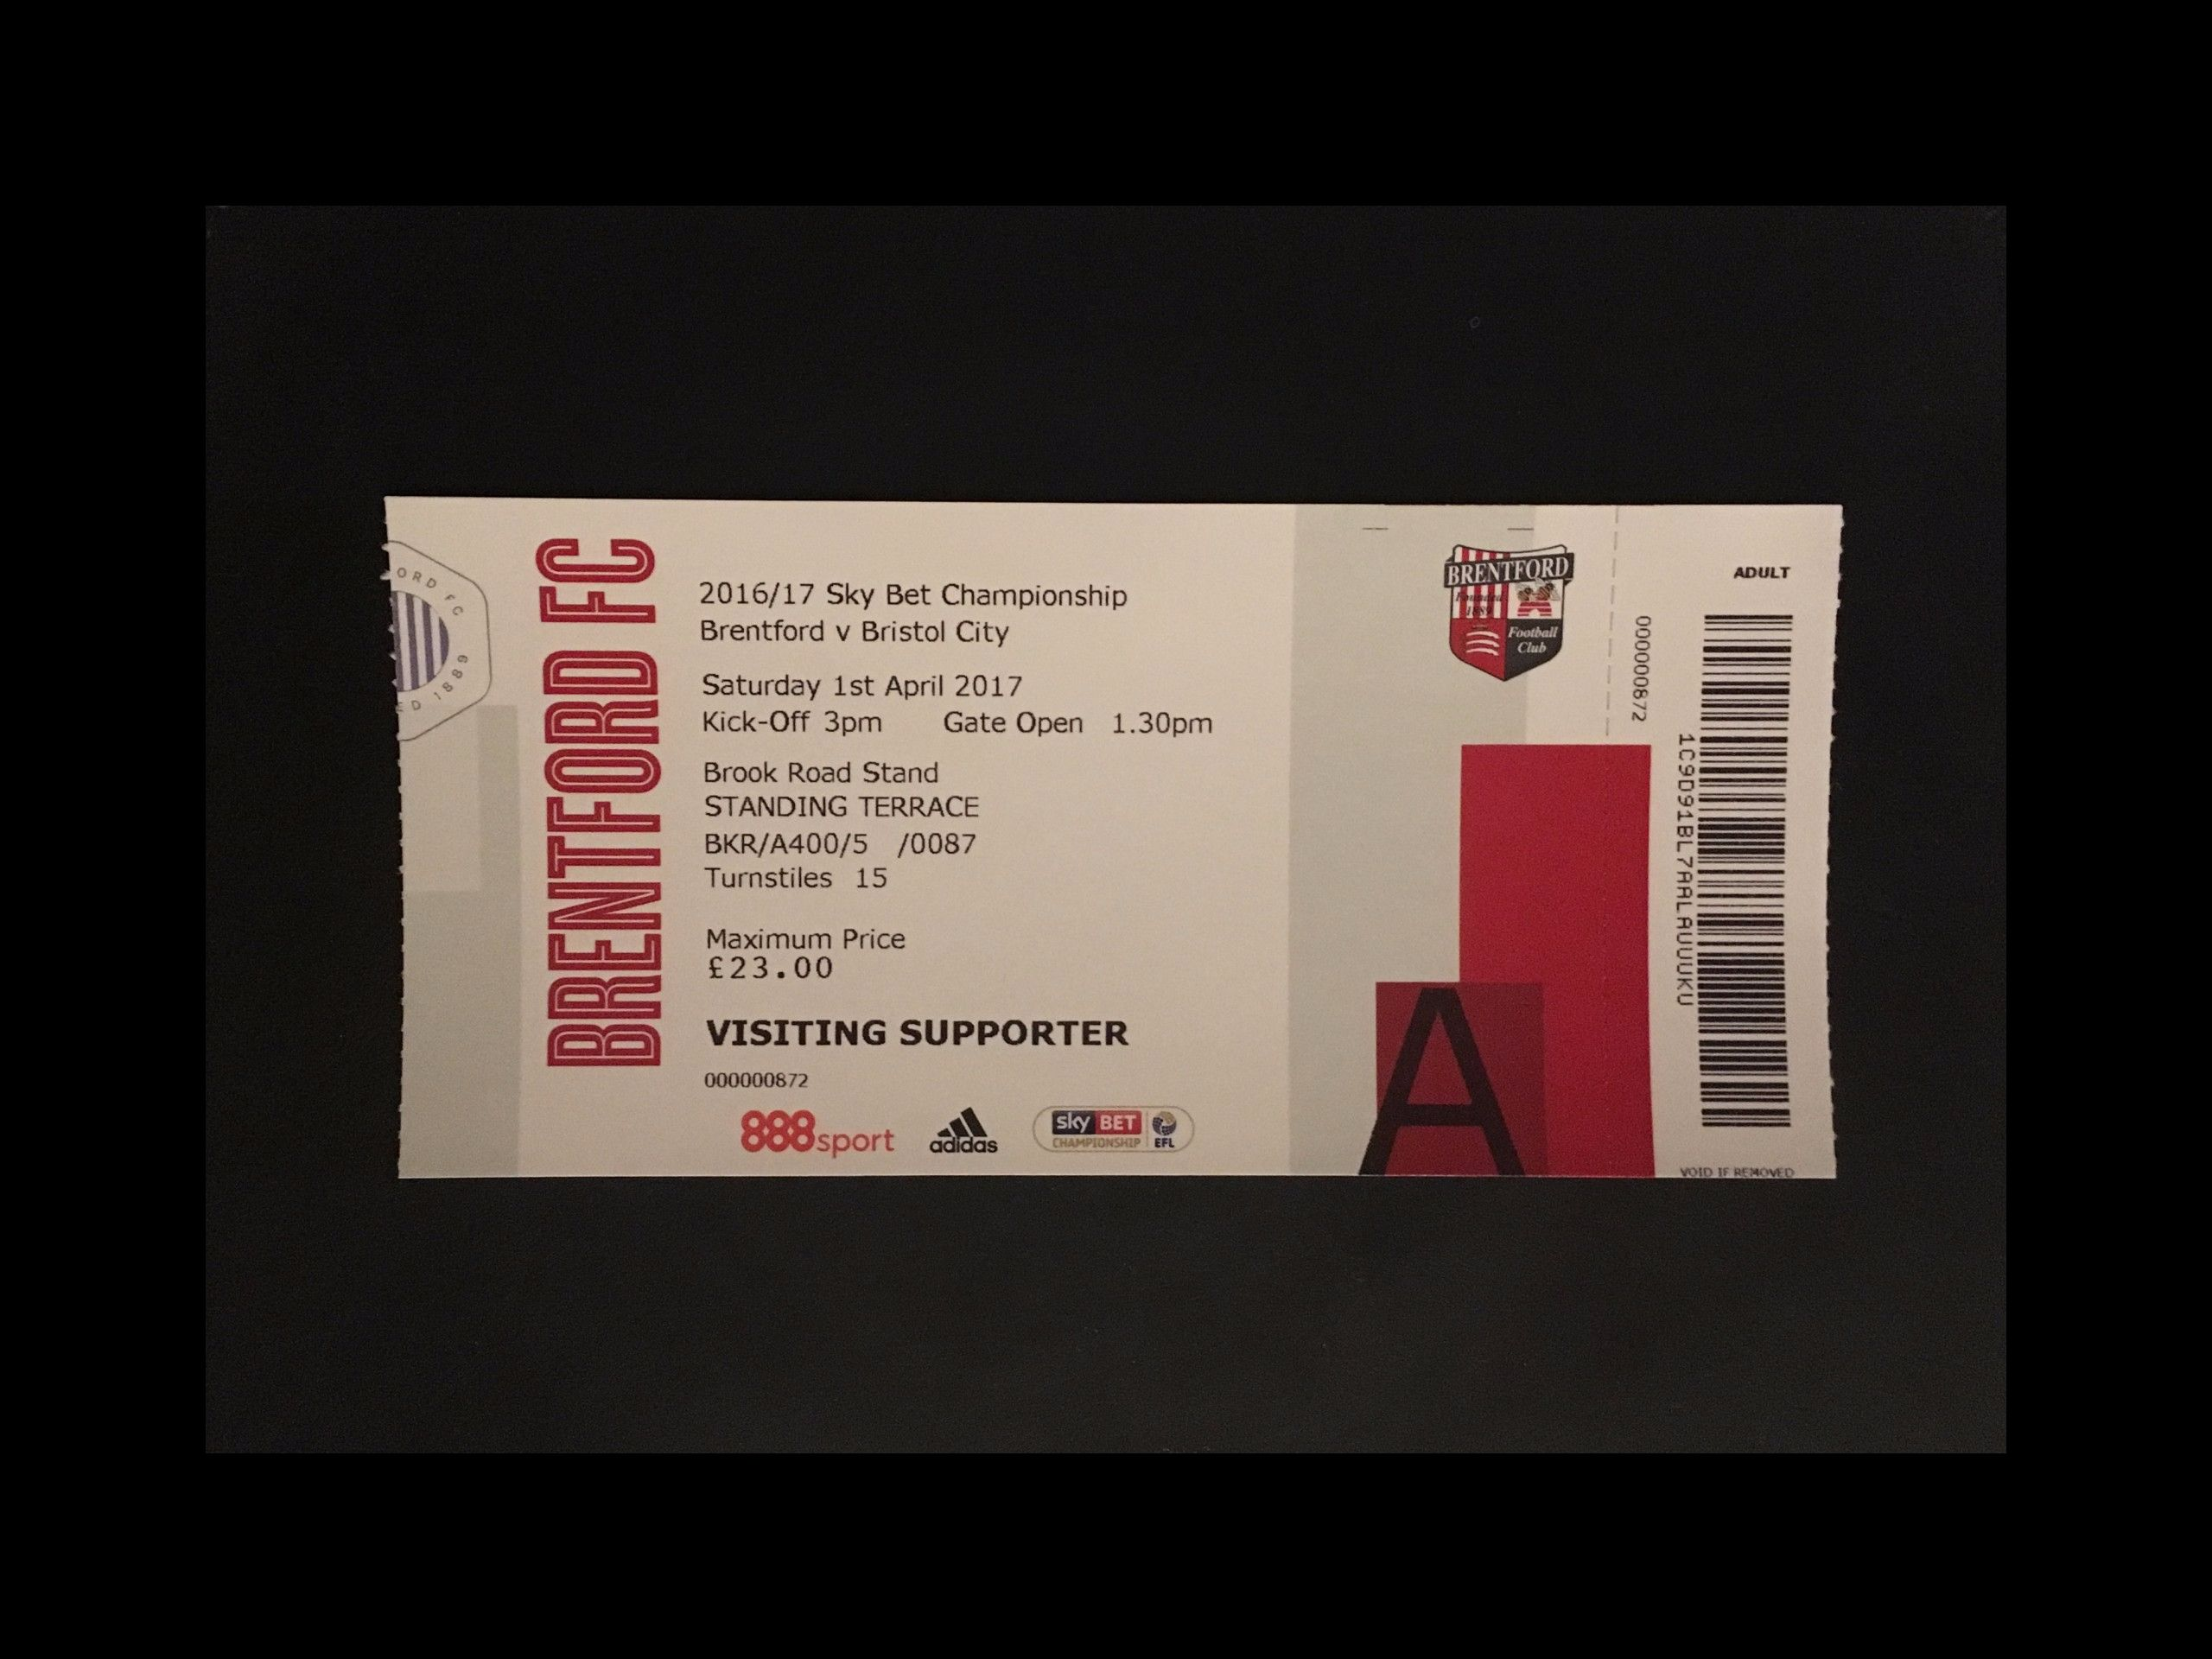 Brentford v Bristol City 01-04-17 Ticket